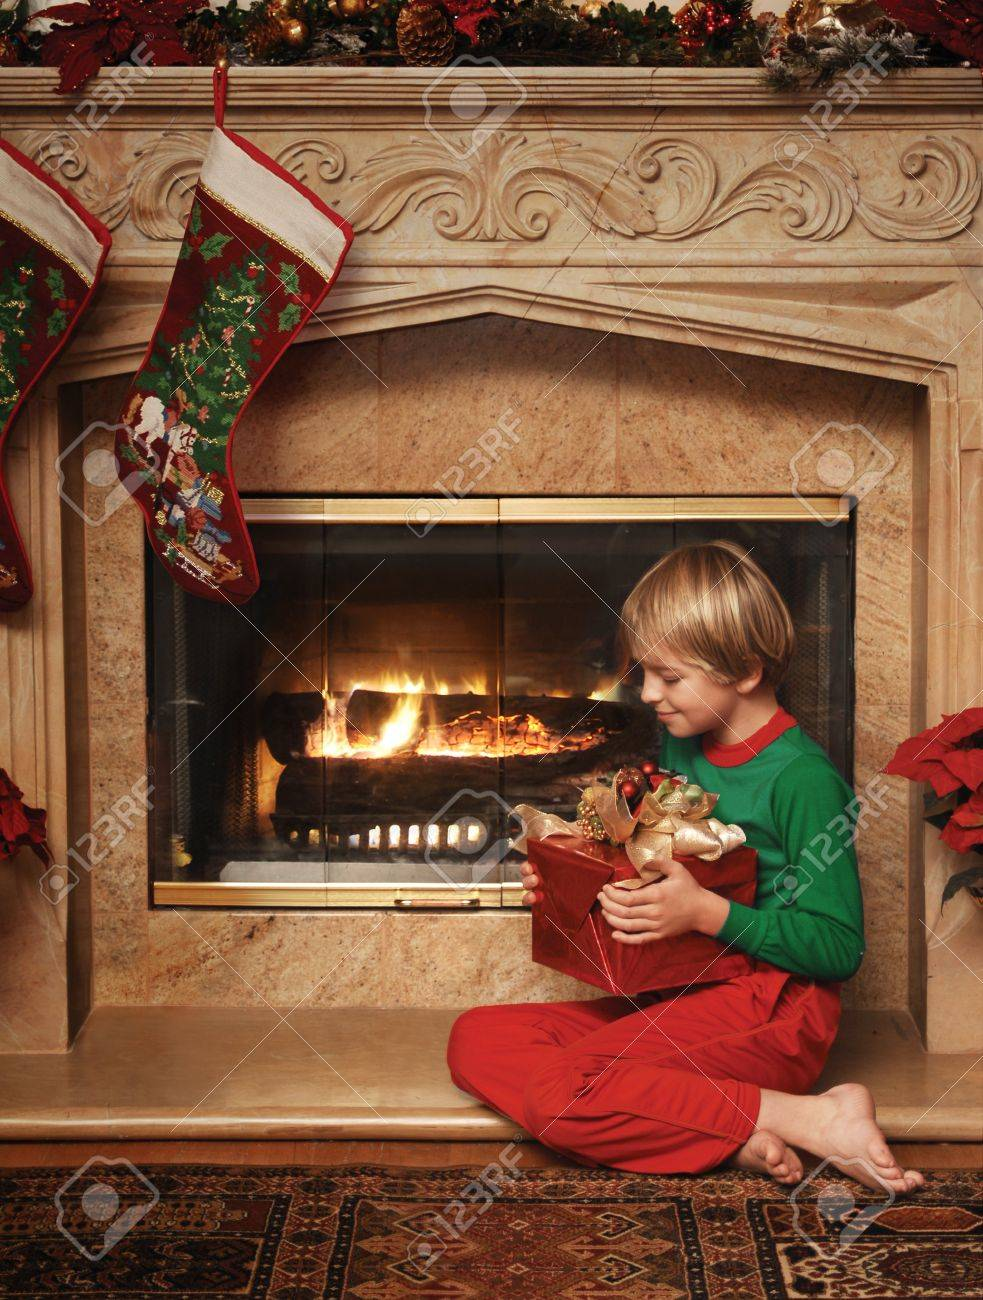 8 Year Old Christmas Gift.8 Year Old Boy Sitting Beside The Fireplace With A Wrapped Christmas